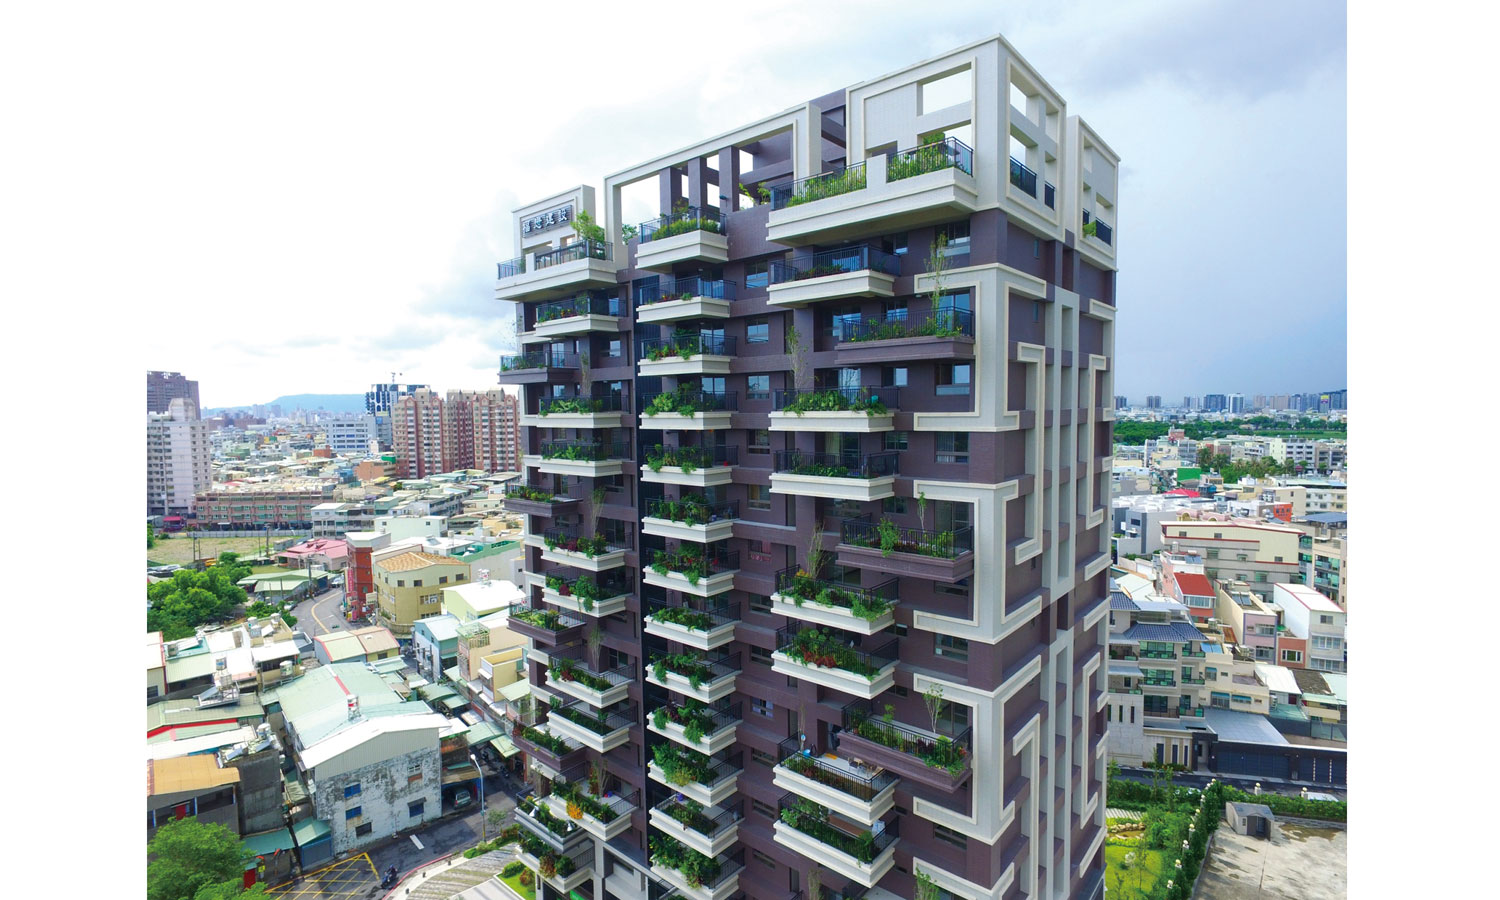 Kaohsiung House. Vertical jungle. (©Public Works Bureau, Kaohsiung City Government, Taiwan©©)